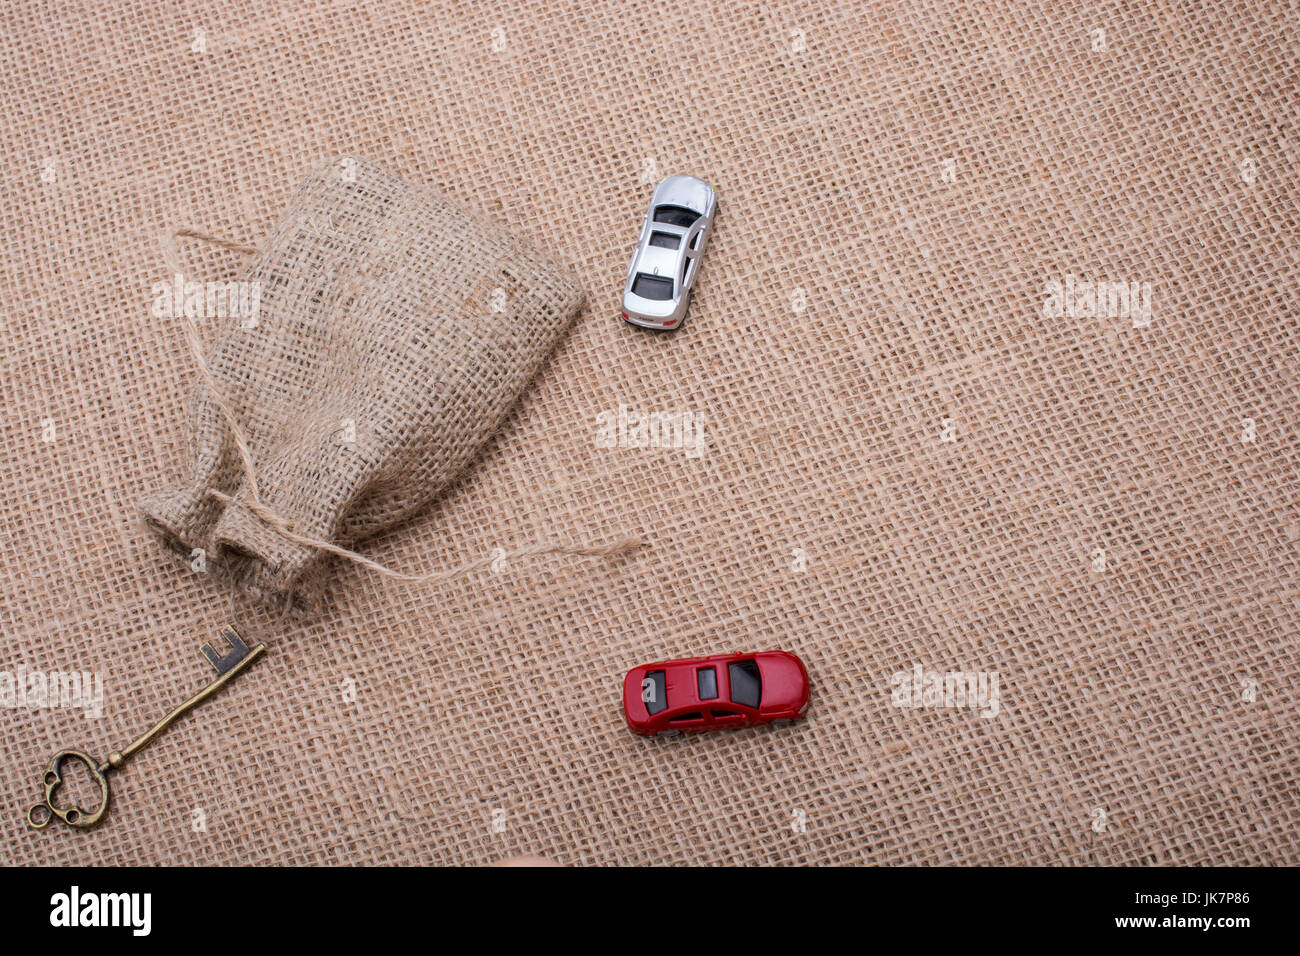 Key, toy cars, human figures and a sack on a canvas - Stock Image